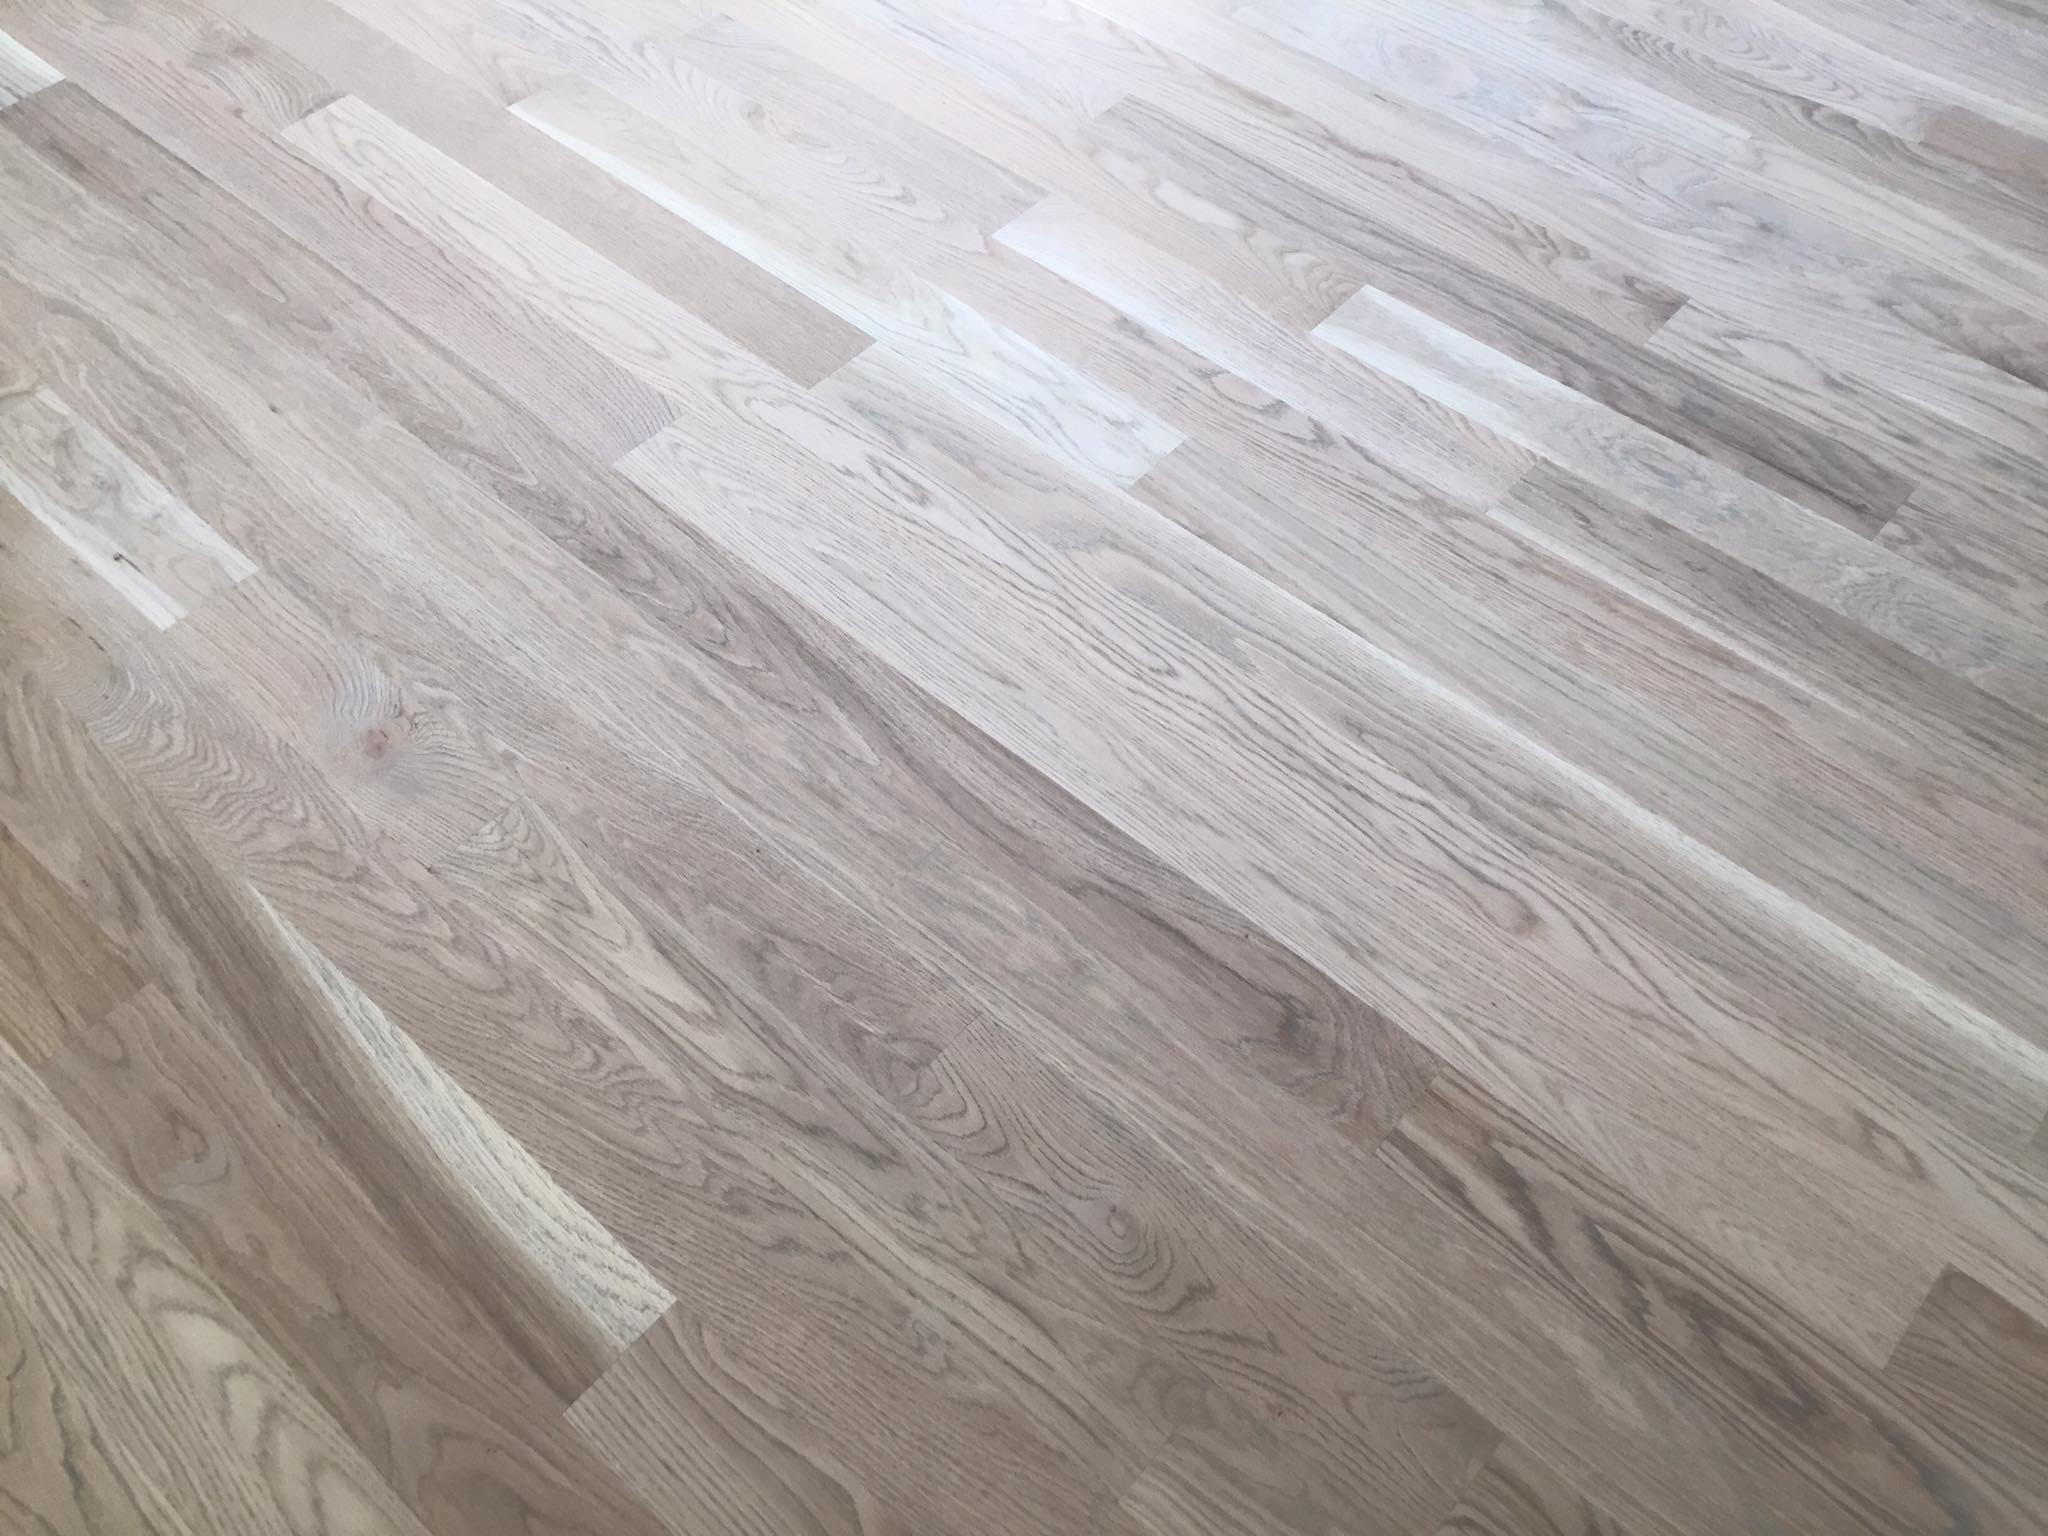 Solid white oak 3 1 4 hardwood floor installation chicago for Unfinished hardwood floors